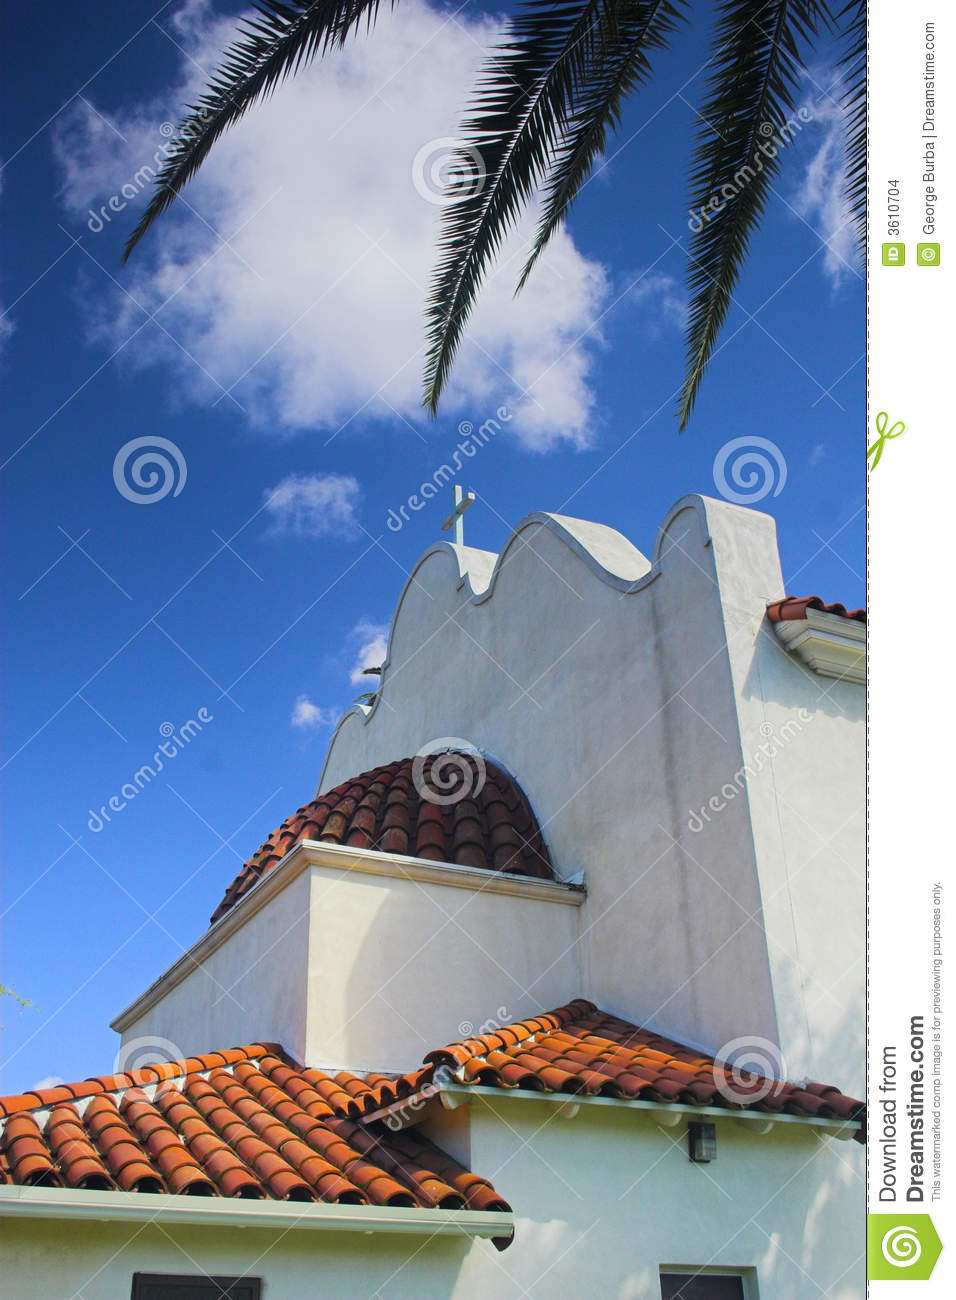 Oude stad San Diego